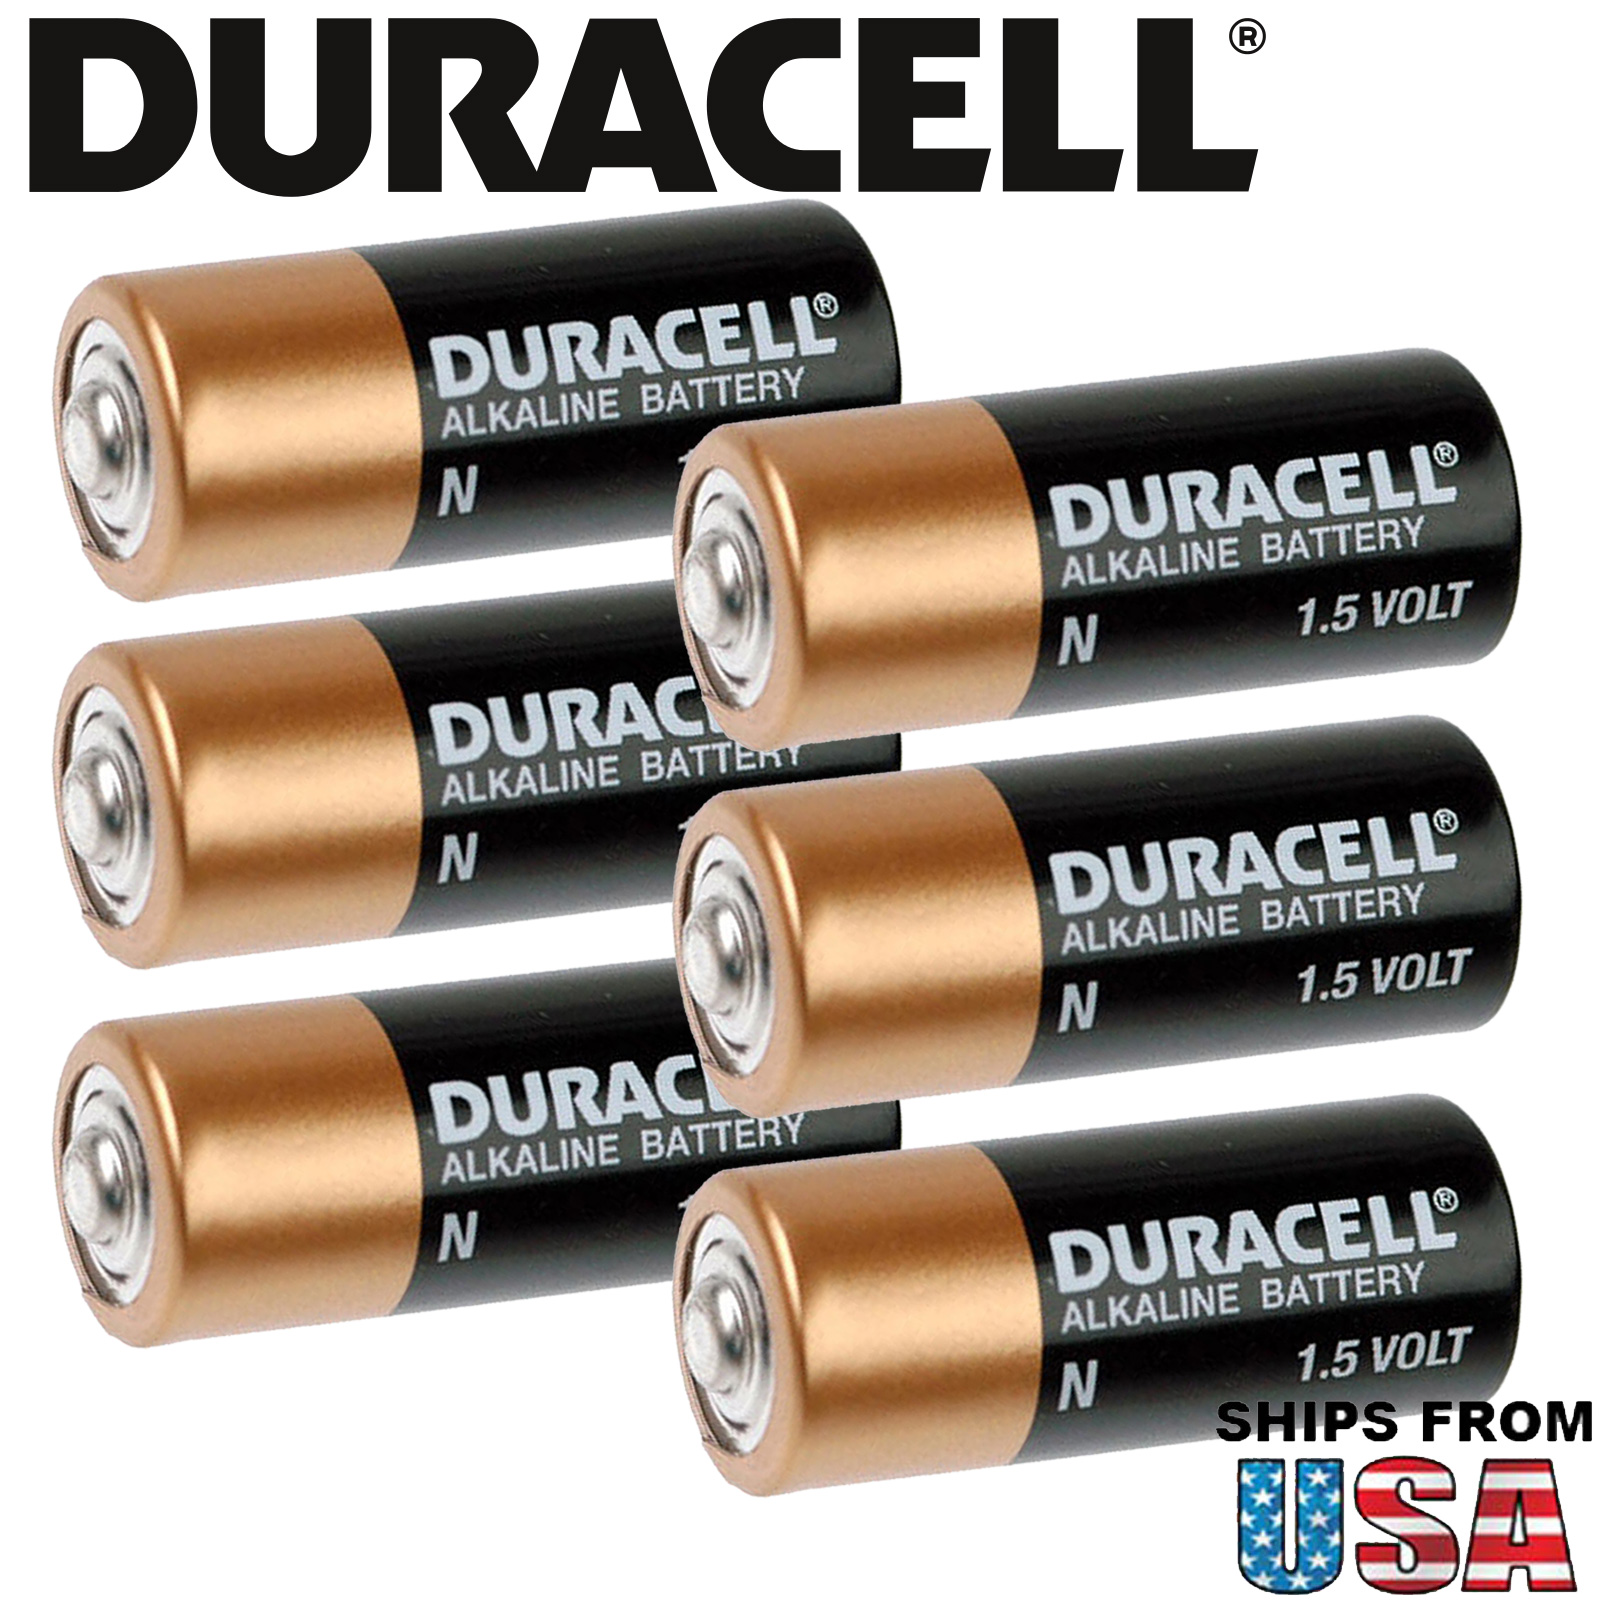 6x Duracell MN9100 Medical 1.5 Volt N Size Alkaline Battery FAST USA SHIP